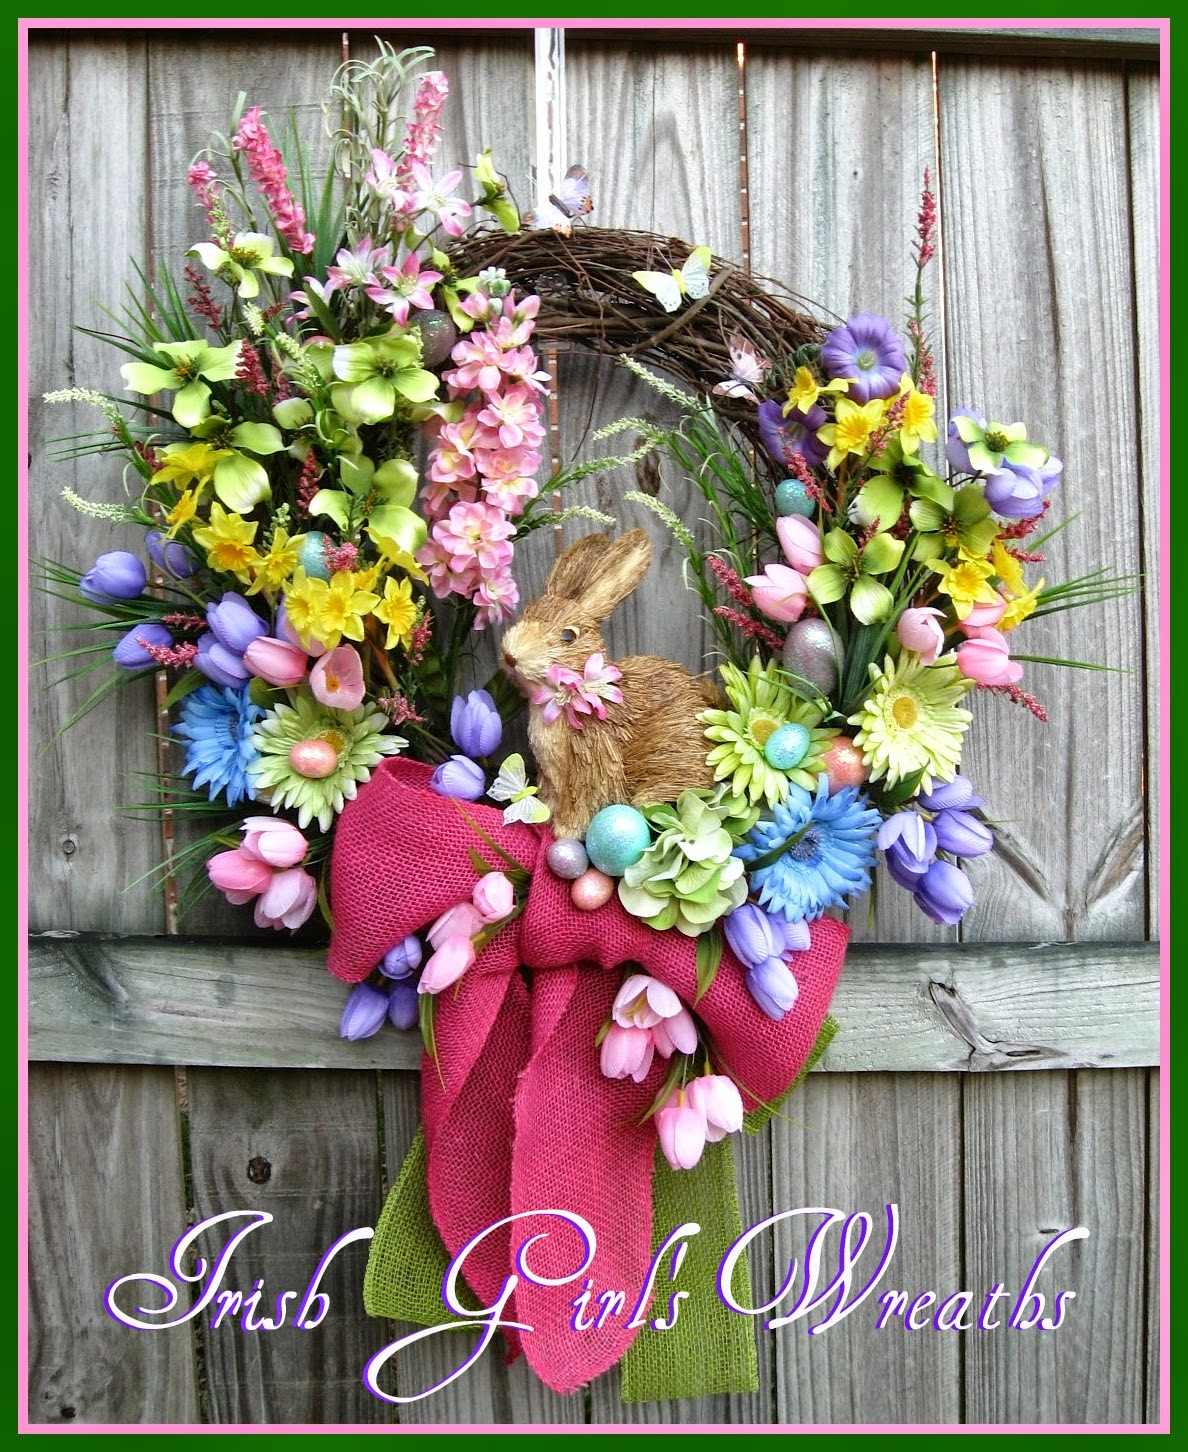 Sisal Easter Bunny Rabbit and Eggs Colorful XL Spring Wreath, Tulips, Gerber Daisies, burlap, Pink, Yellow, Blue, Green, Purple, Daffodils